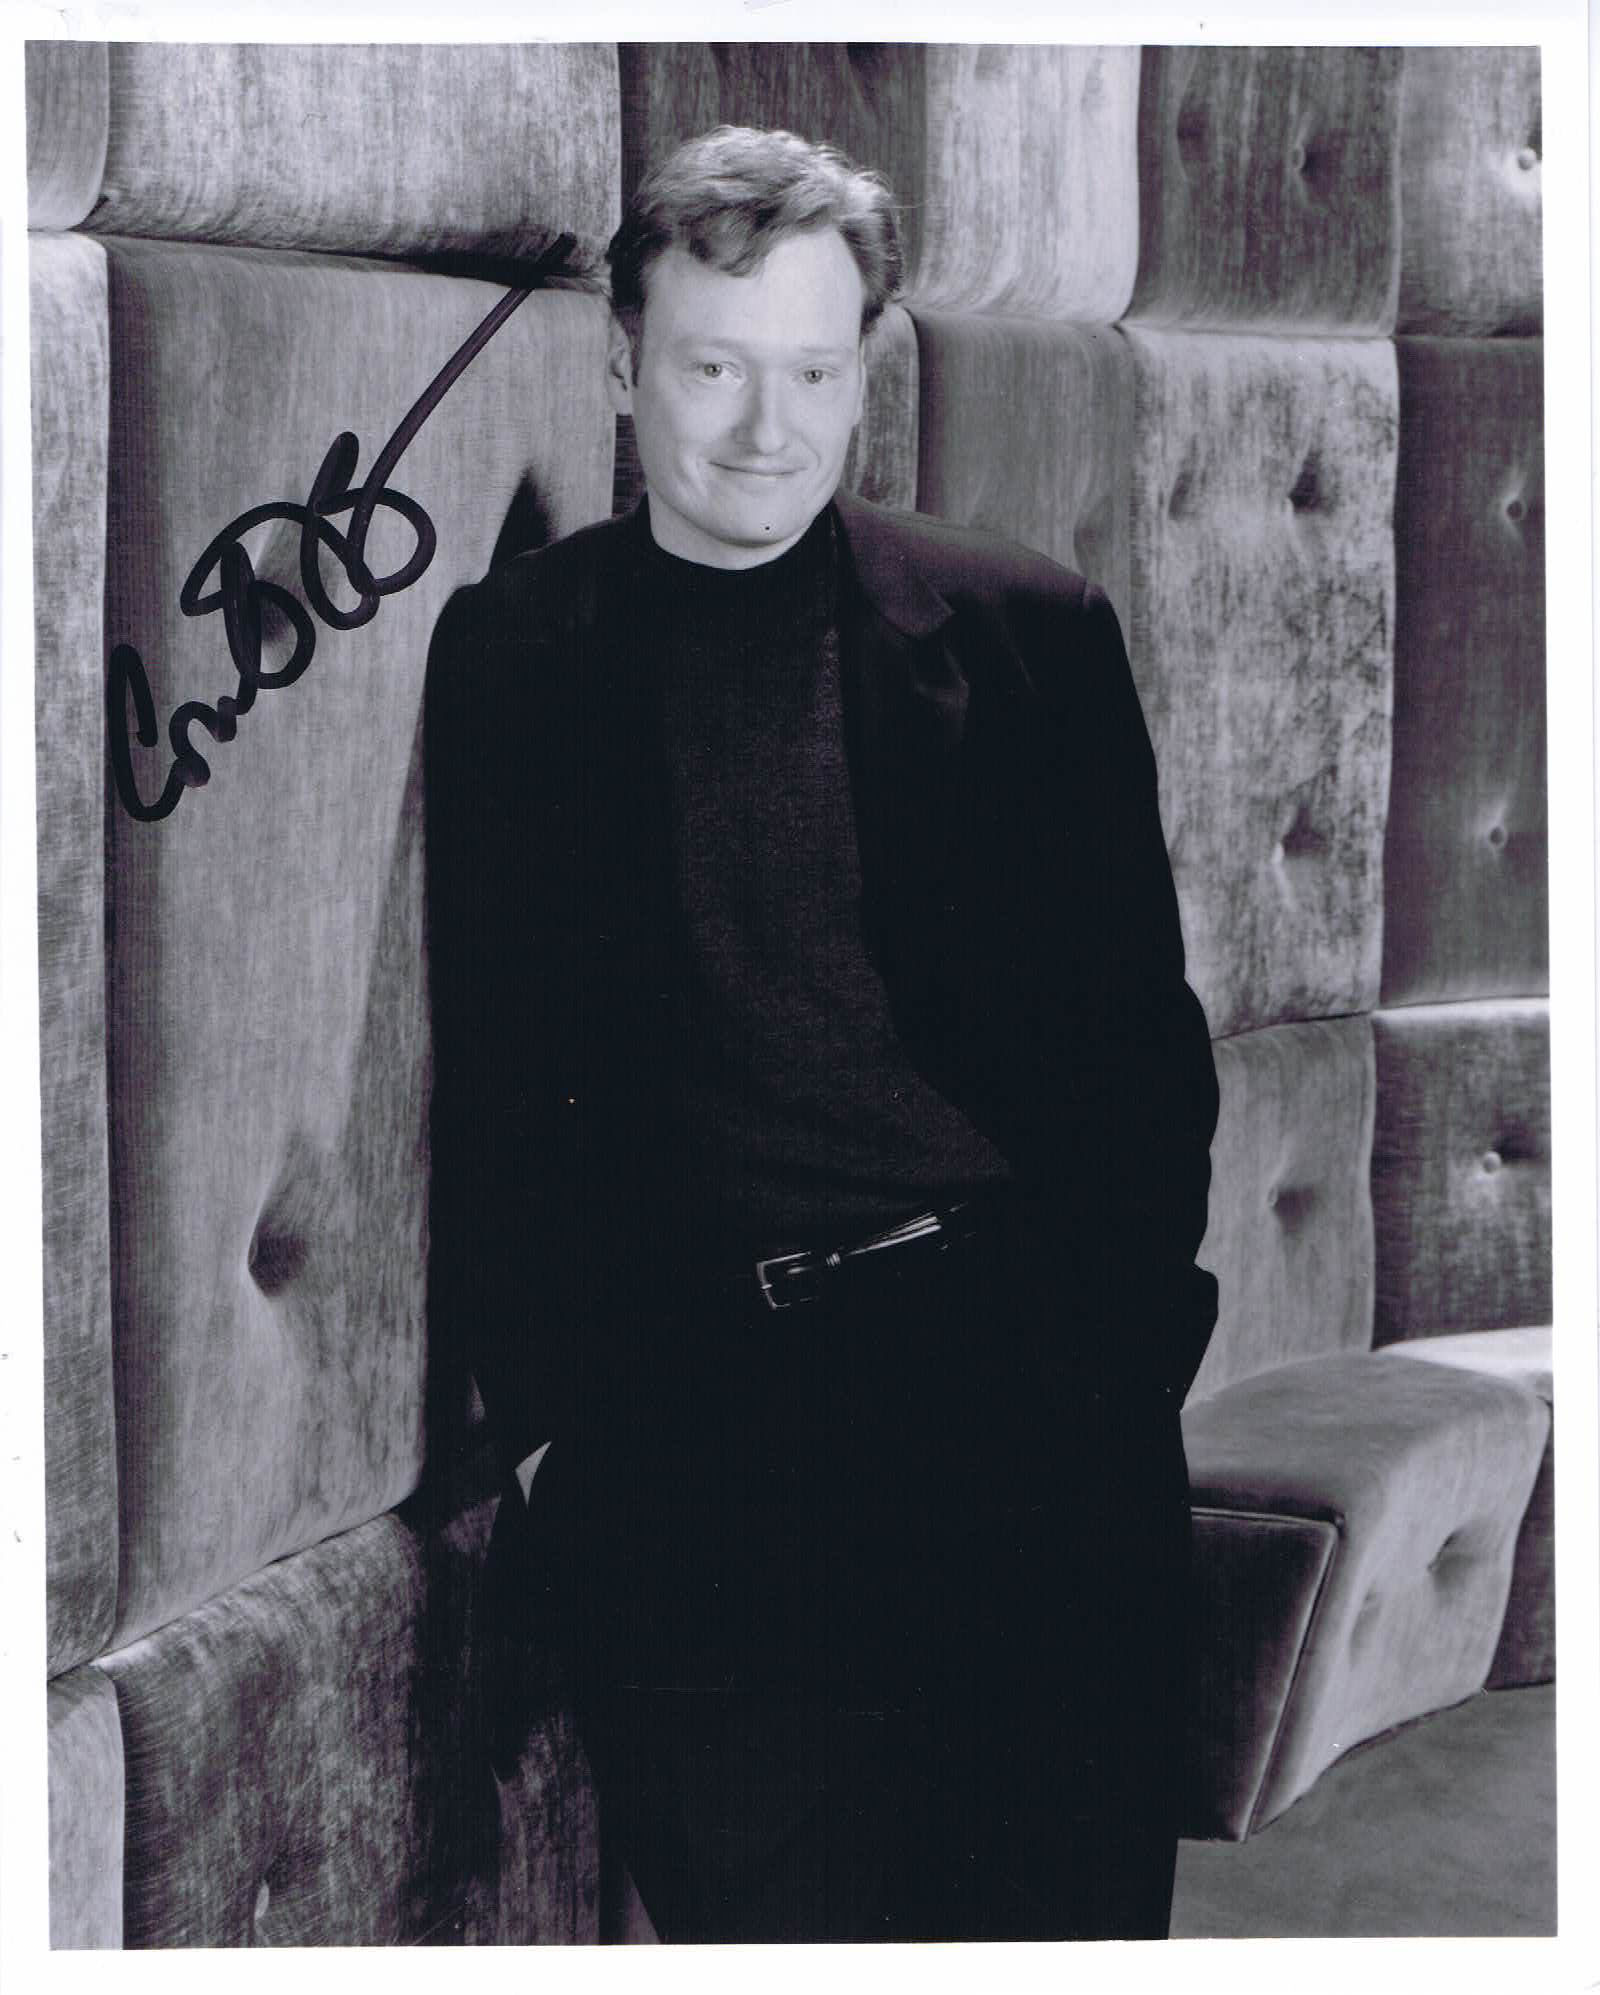 CONAN O'BRIEN Autograph 8 x 10 Photo